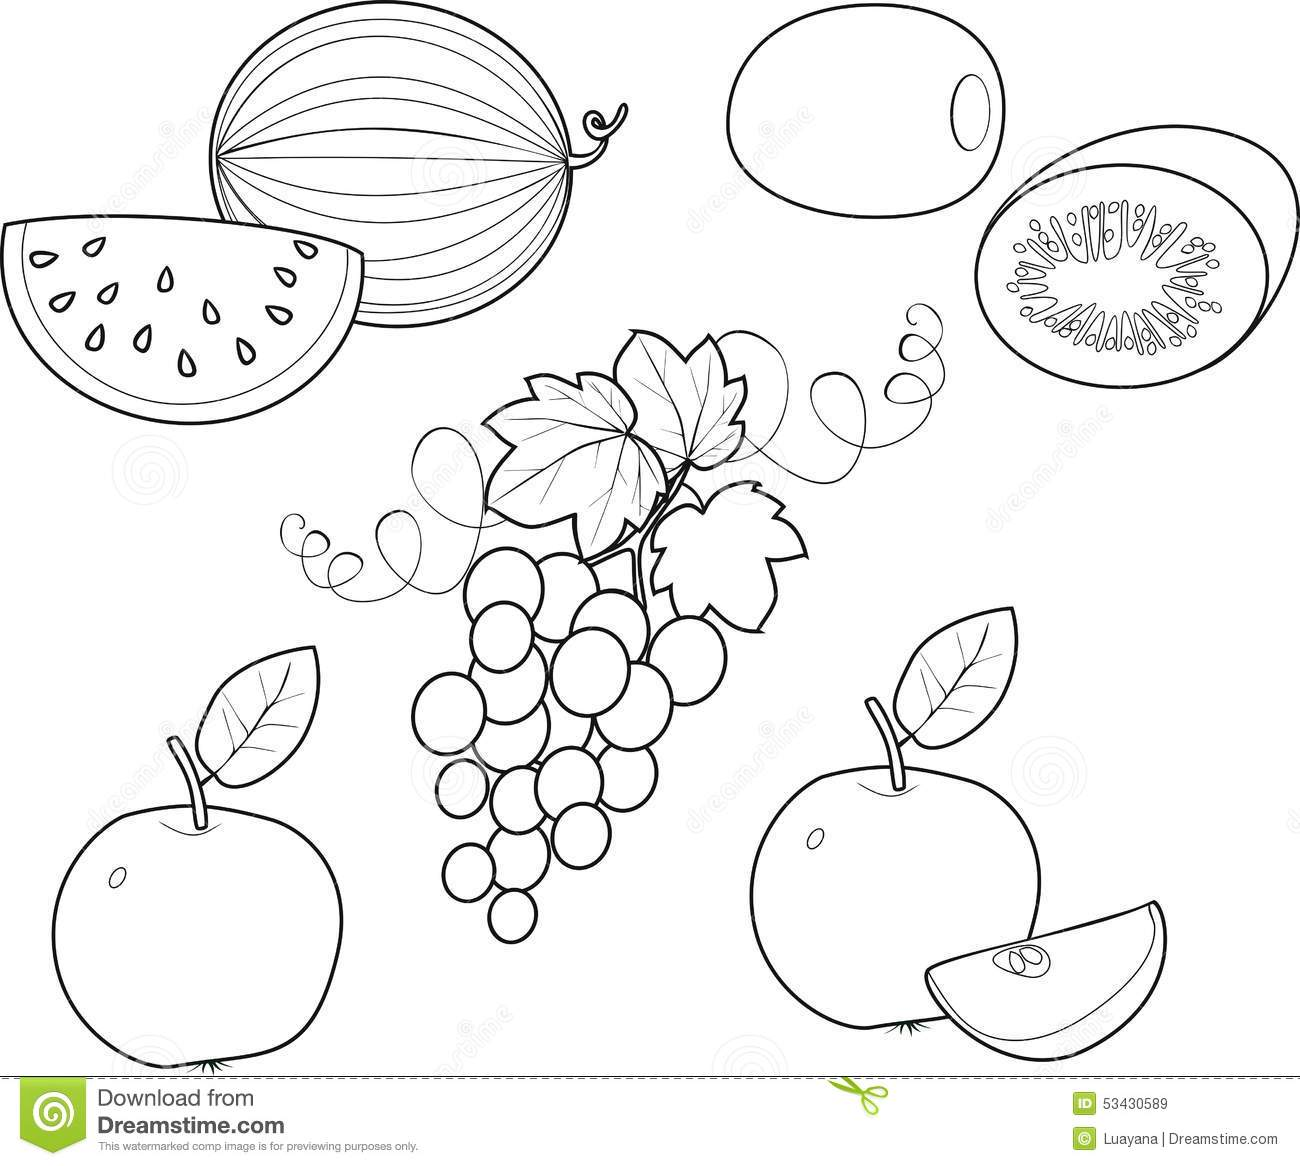 Coloring Fruit Stock Vector - Image: 53430589